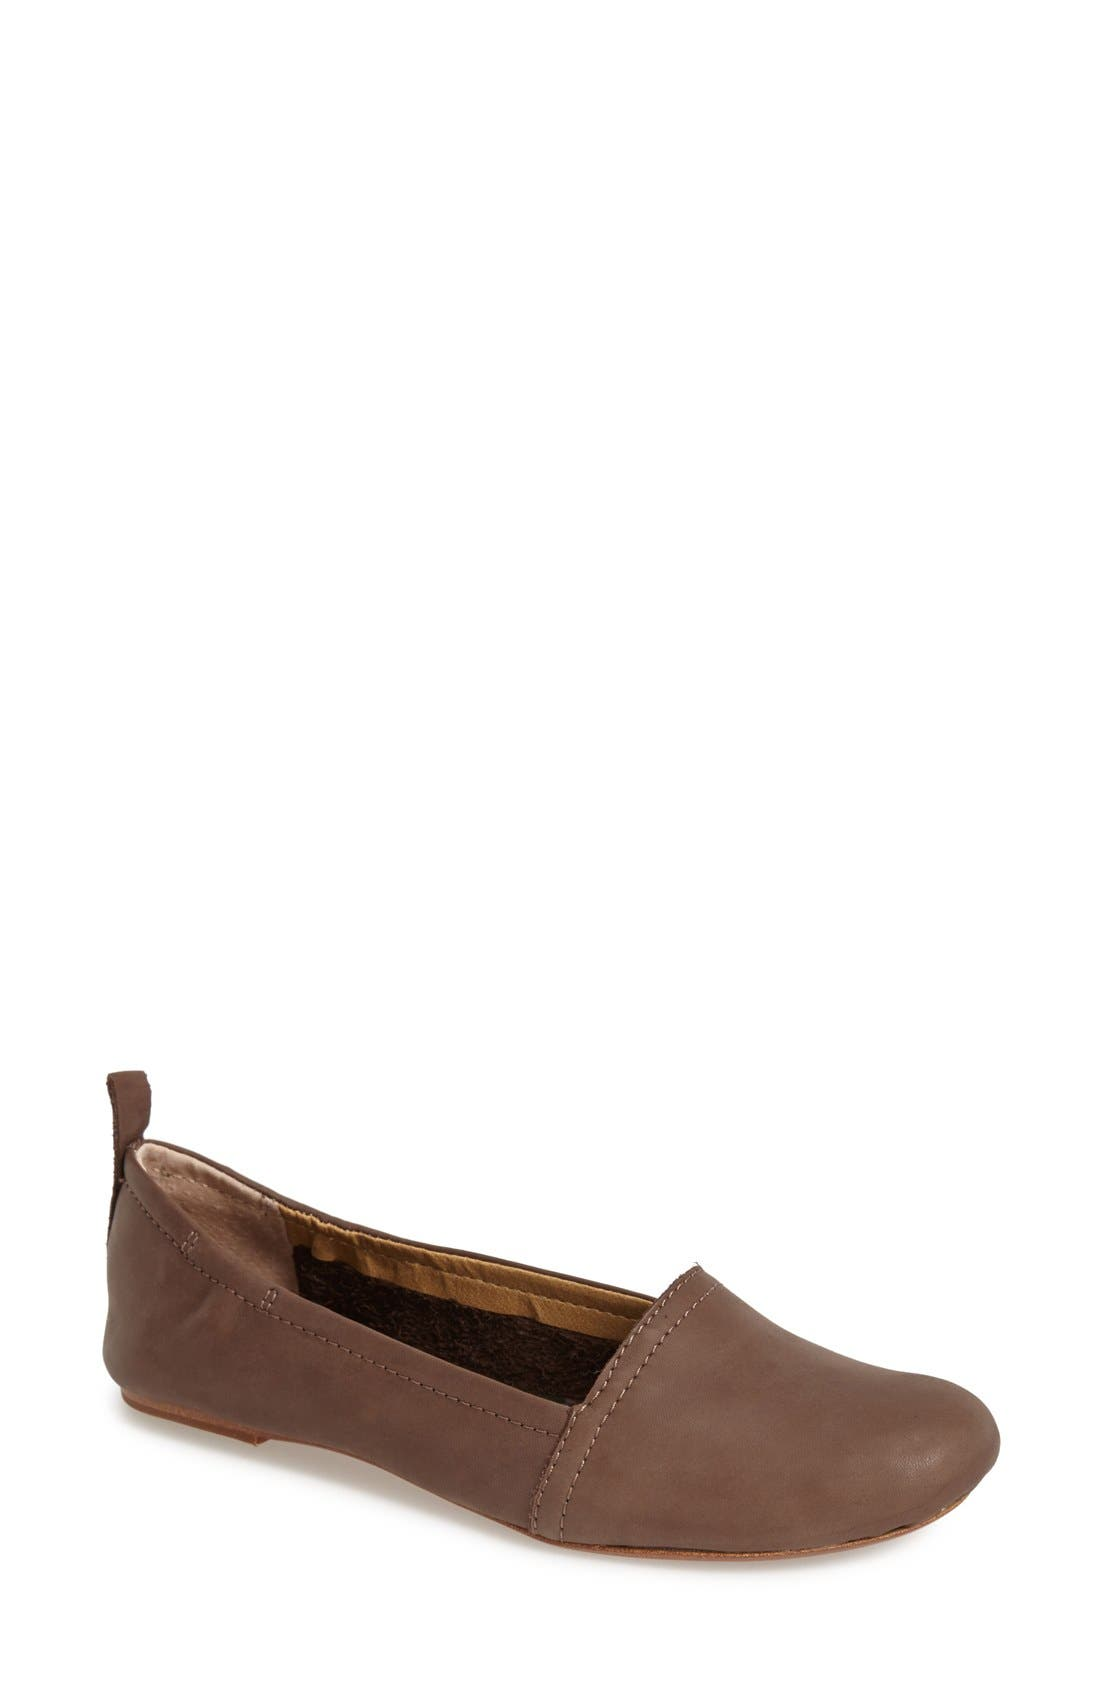 'Bettie' Leather Flat,                         Main,                         color, Dark Brown